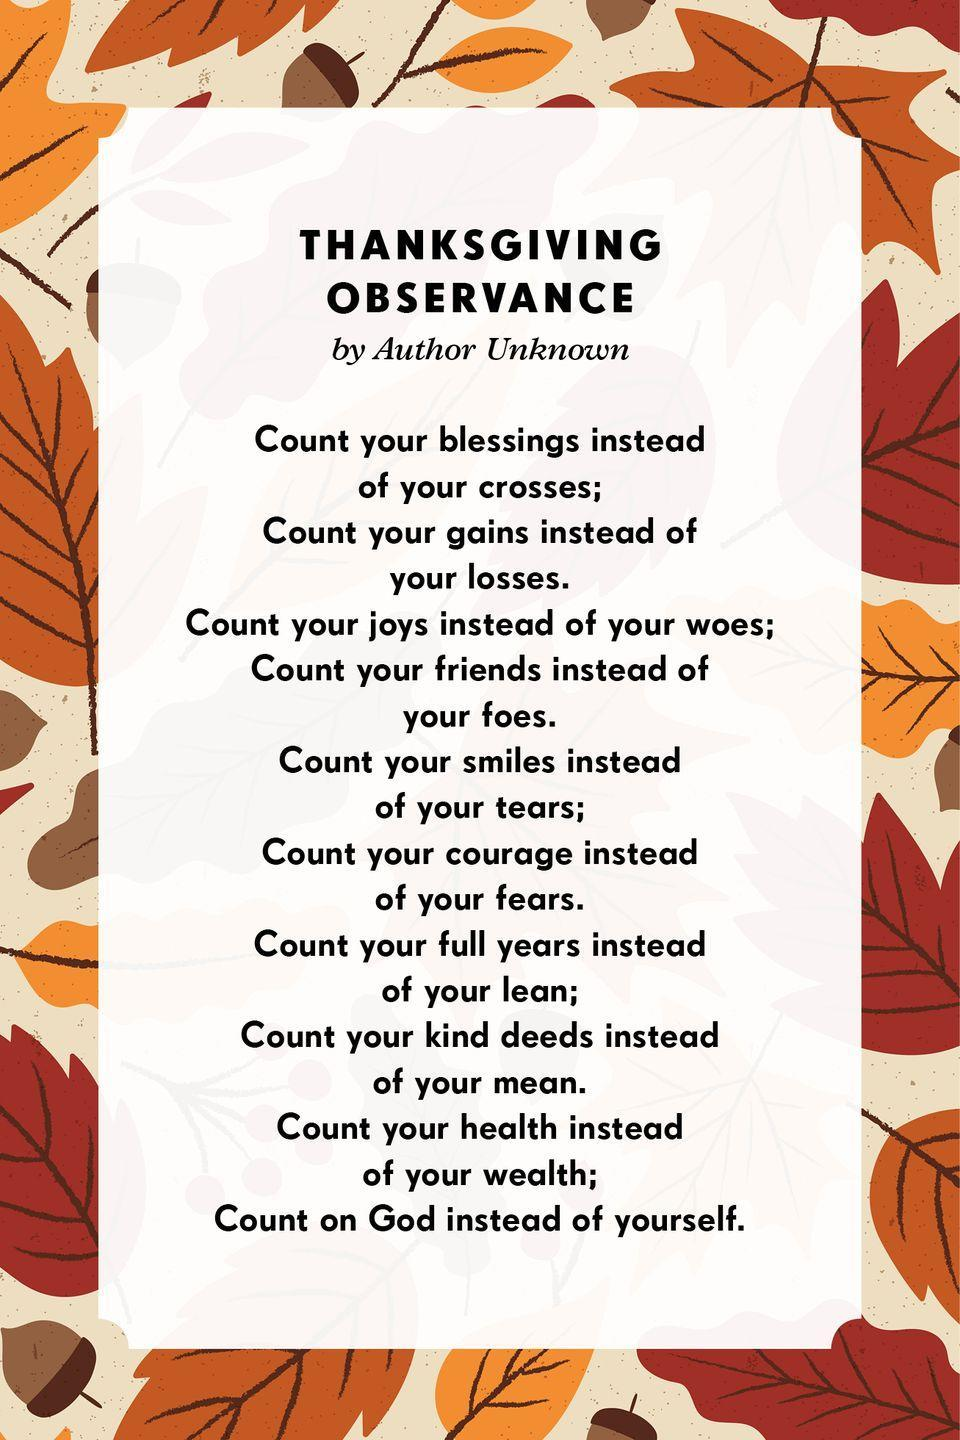 <p><strong>Thanksgiving Observance</strong></p><p>Count your blessings instead of your crosses;<br>Count your gains instead of your losses.<br>Count your joys instead of your woes;<br>Count your friends instead of your foes.<br>Count your smiles instead of your tears;<br>Count your courage instead of your fears.<br>Count your full years instead of your lean;<br>Count your kind deeds instead of your mean.<br>Count your health instead of your wealth;<br>Count on God instead of yourself.</p>